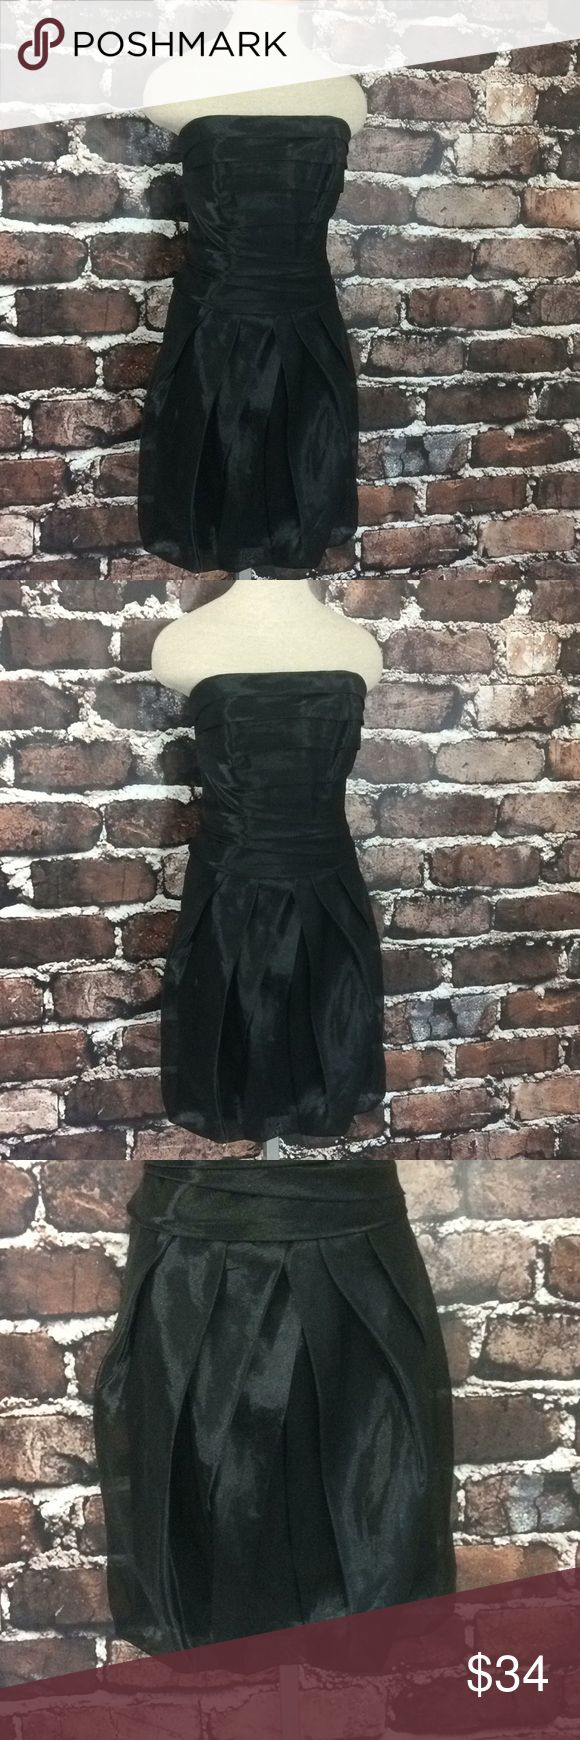 """Vera Wang black strapless dress 12 ruffles organza This dress is ready for your next event. Layered bodice and pleated at skirt. Shell has lots of volume at skirt as the hem is sewn under to meet the lining creating a bell shape. All black and in great condition! Mannequin is an xs and doesn't quite fill out this dress. 18"""" armpit to armpit. 30.5 """" in center of front. 32"""" waist.  Wired boning on sides. White by Vera Wang bell strapless party dress black size 12. White by Vera Wang Dresses…"""